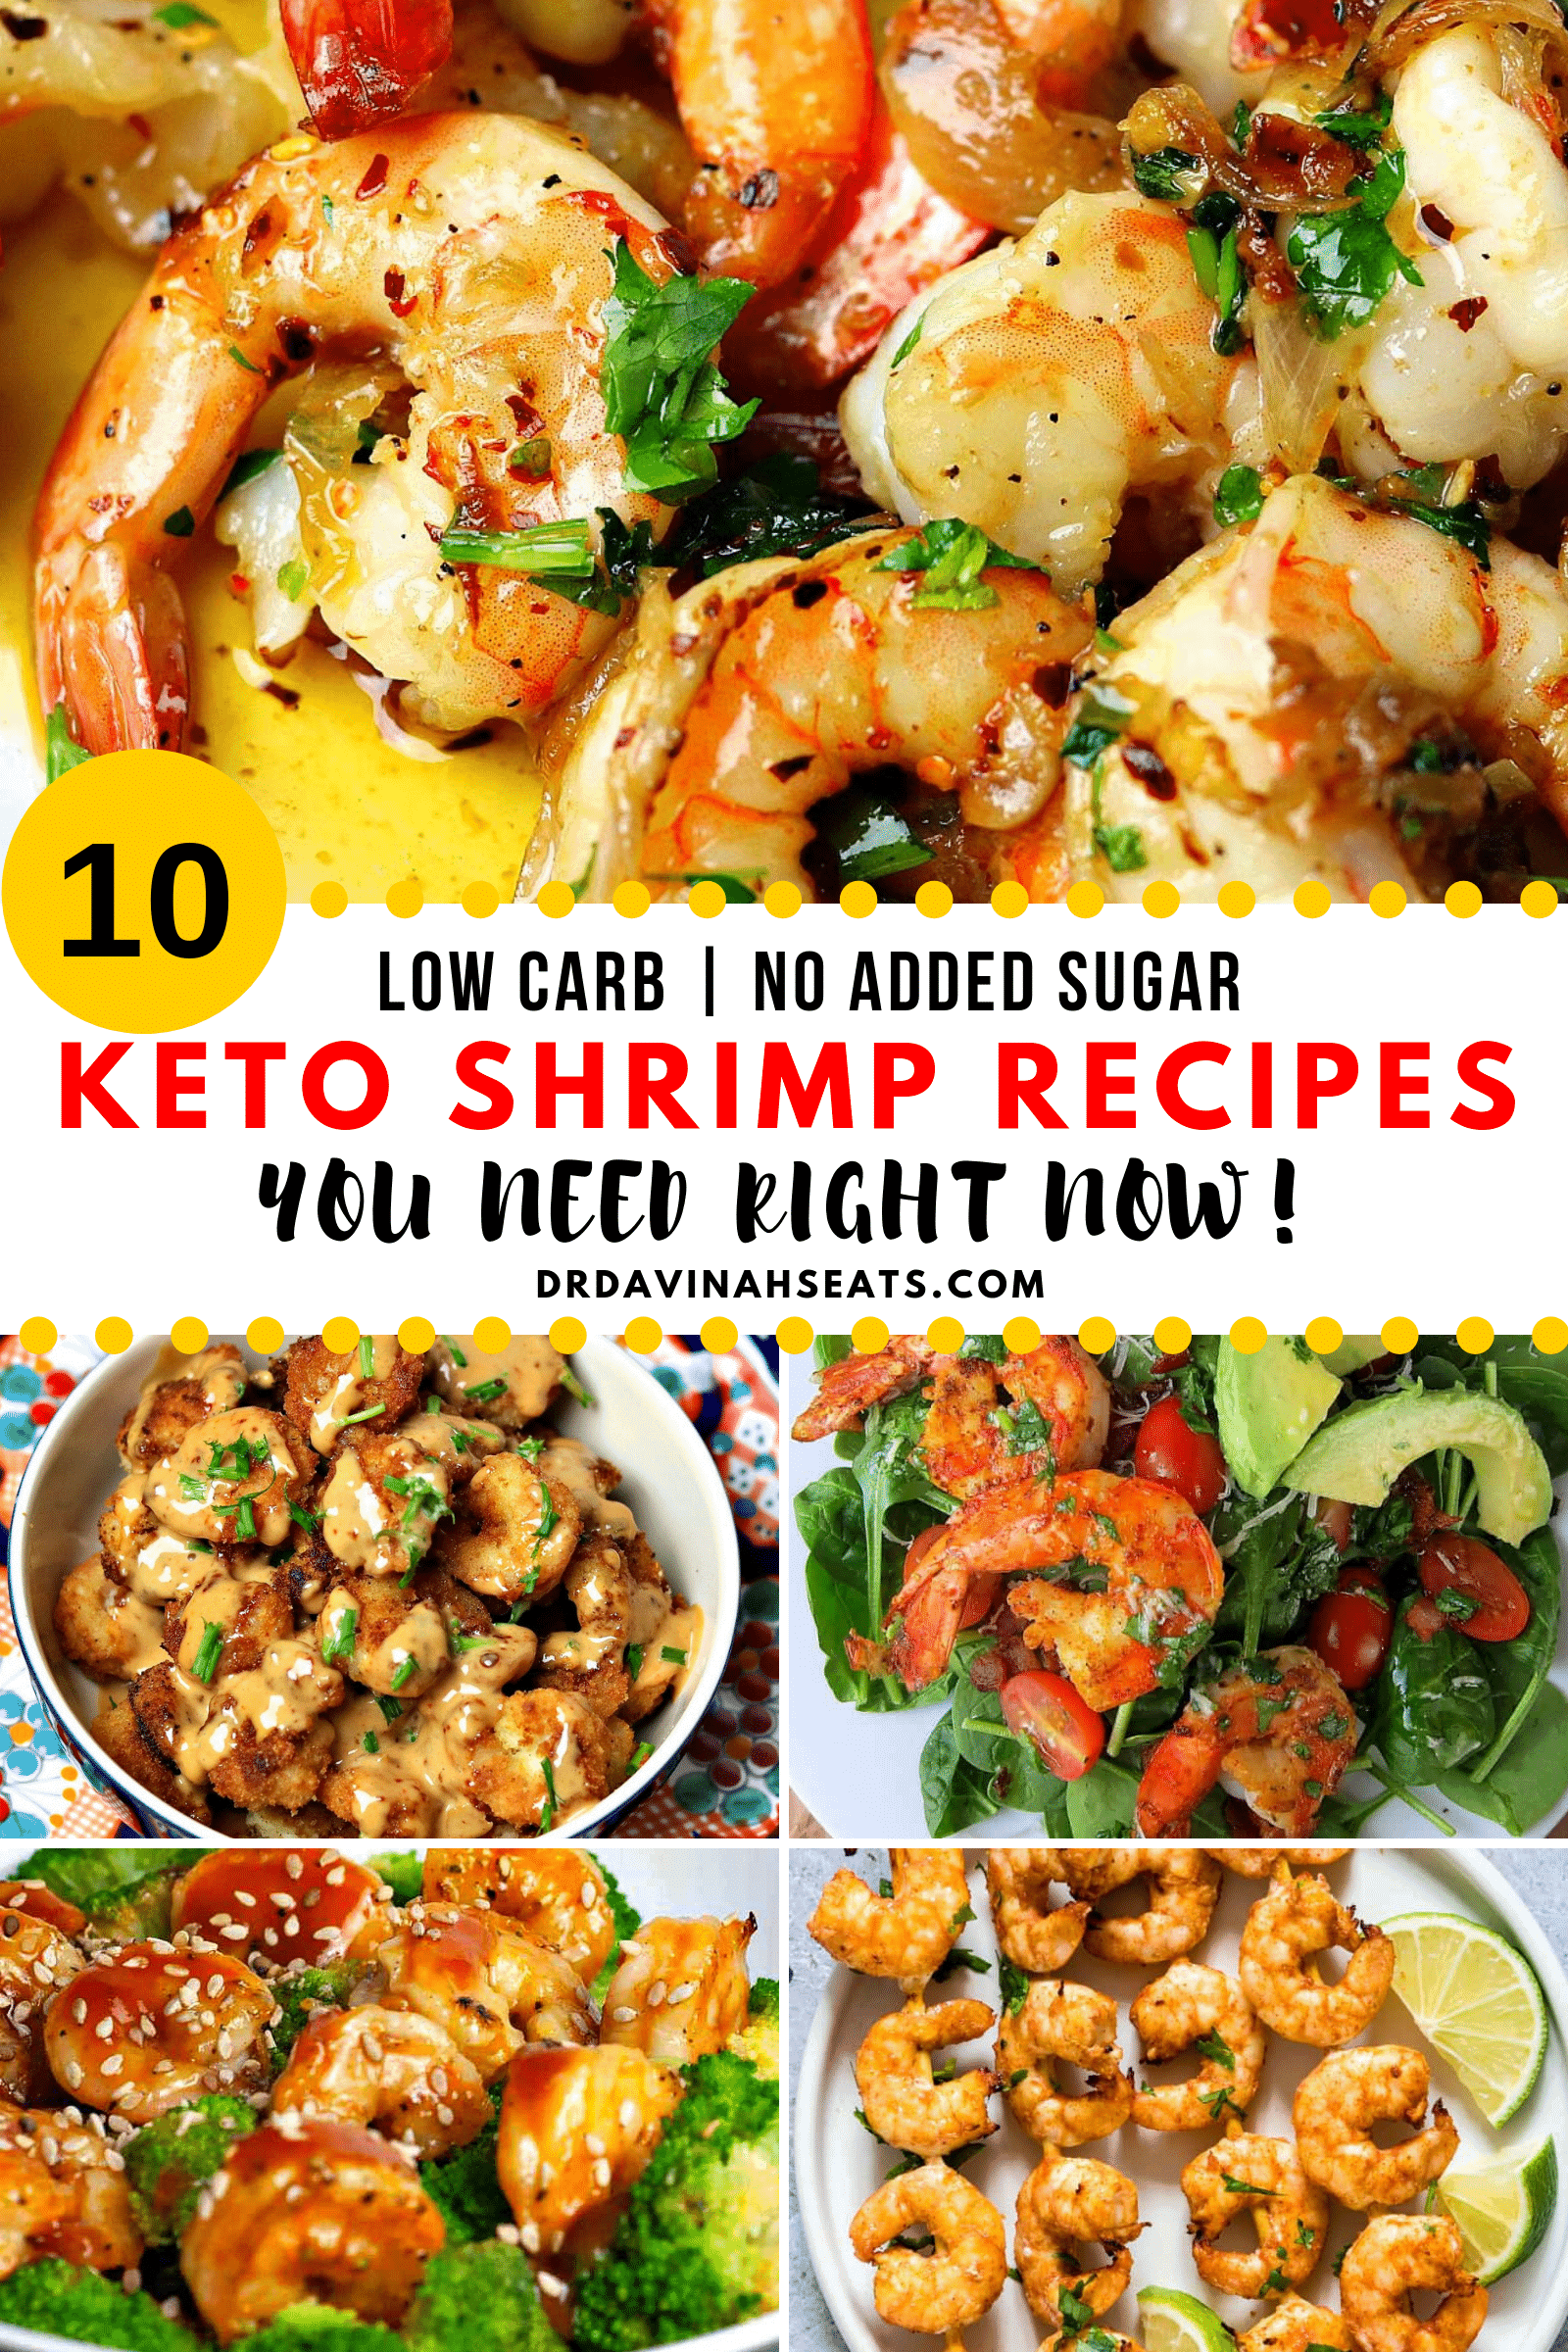 Pinterest Image for 10 Keto Shrimp Recipes